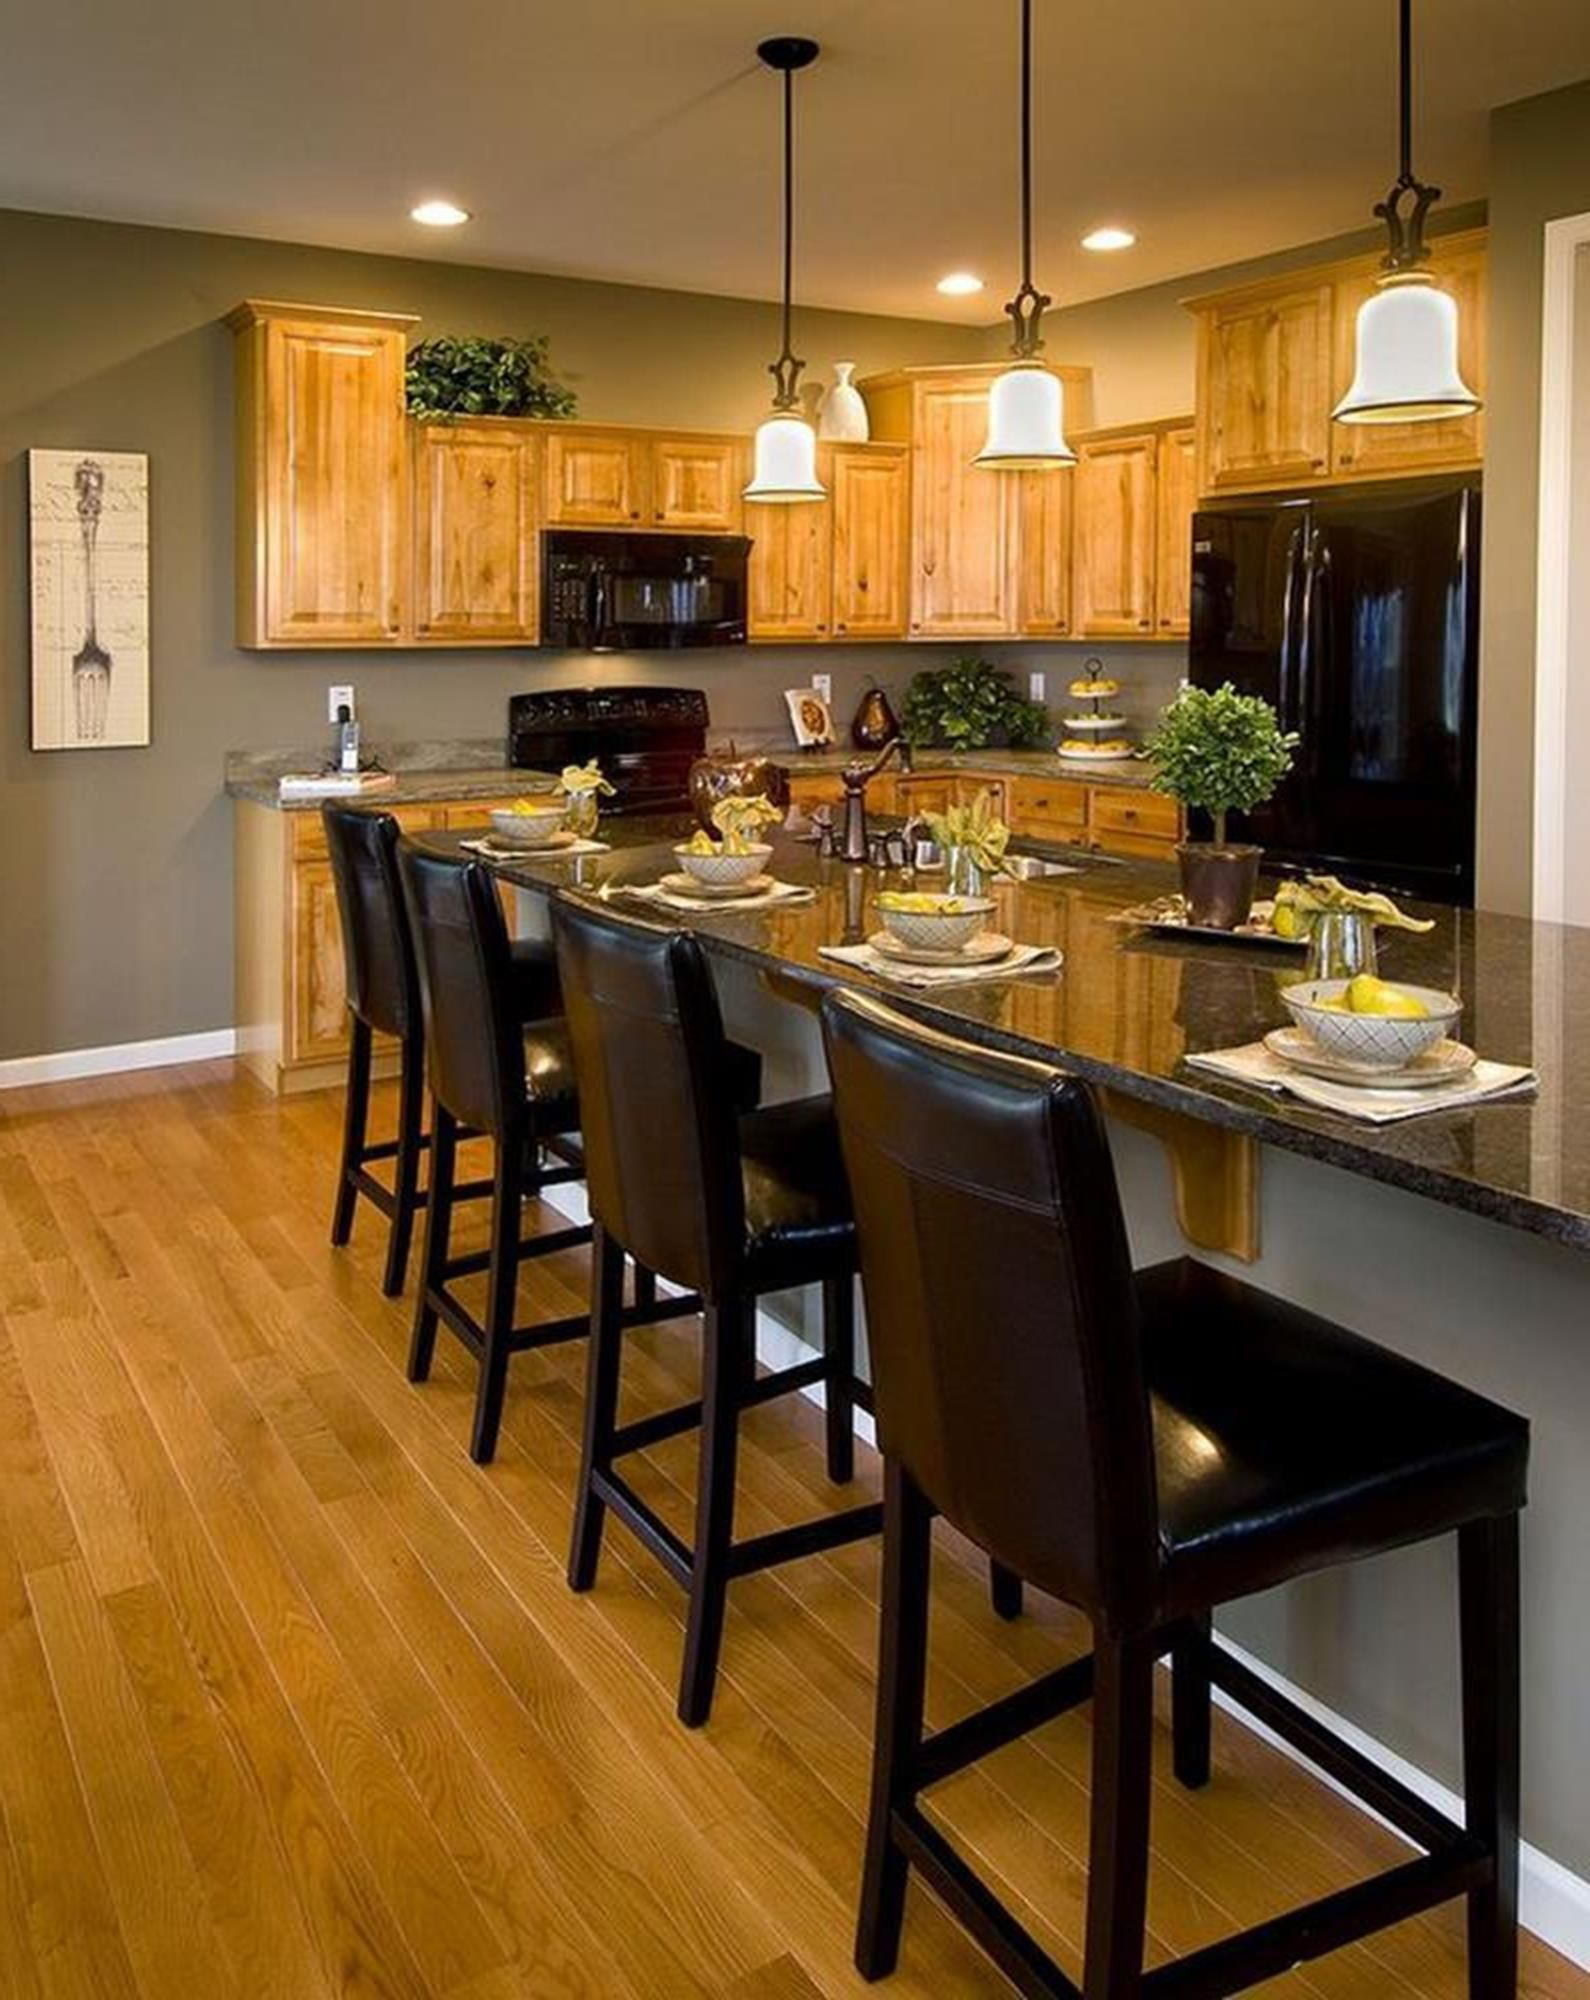 20 perfect kitchen wall colors with oak cabinets for 2019 14 in 2020 kitchen wall colors oak on kitchen ideas colorful id=36609